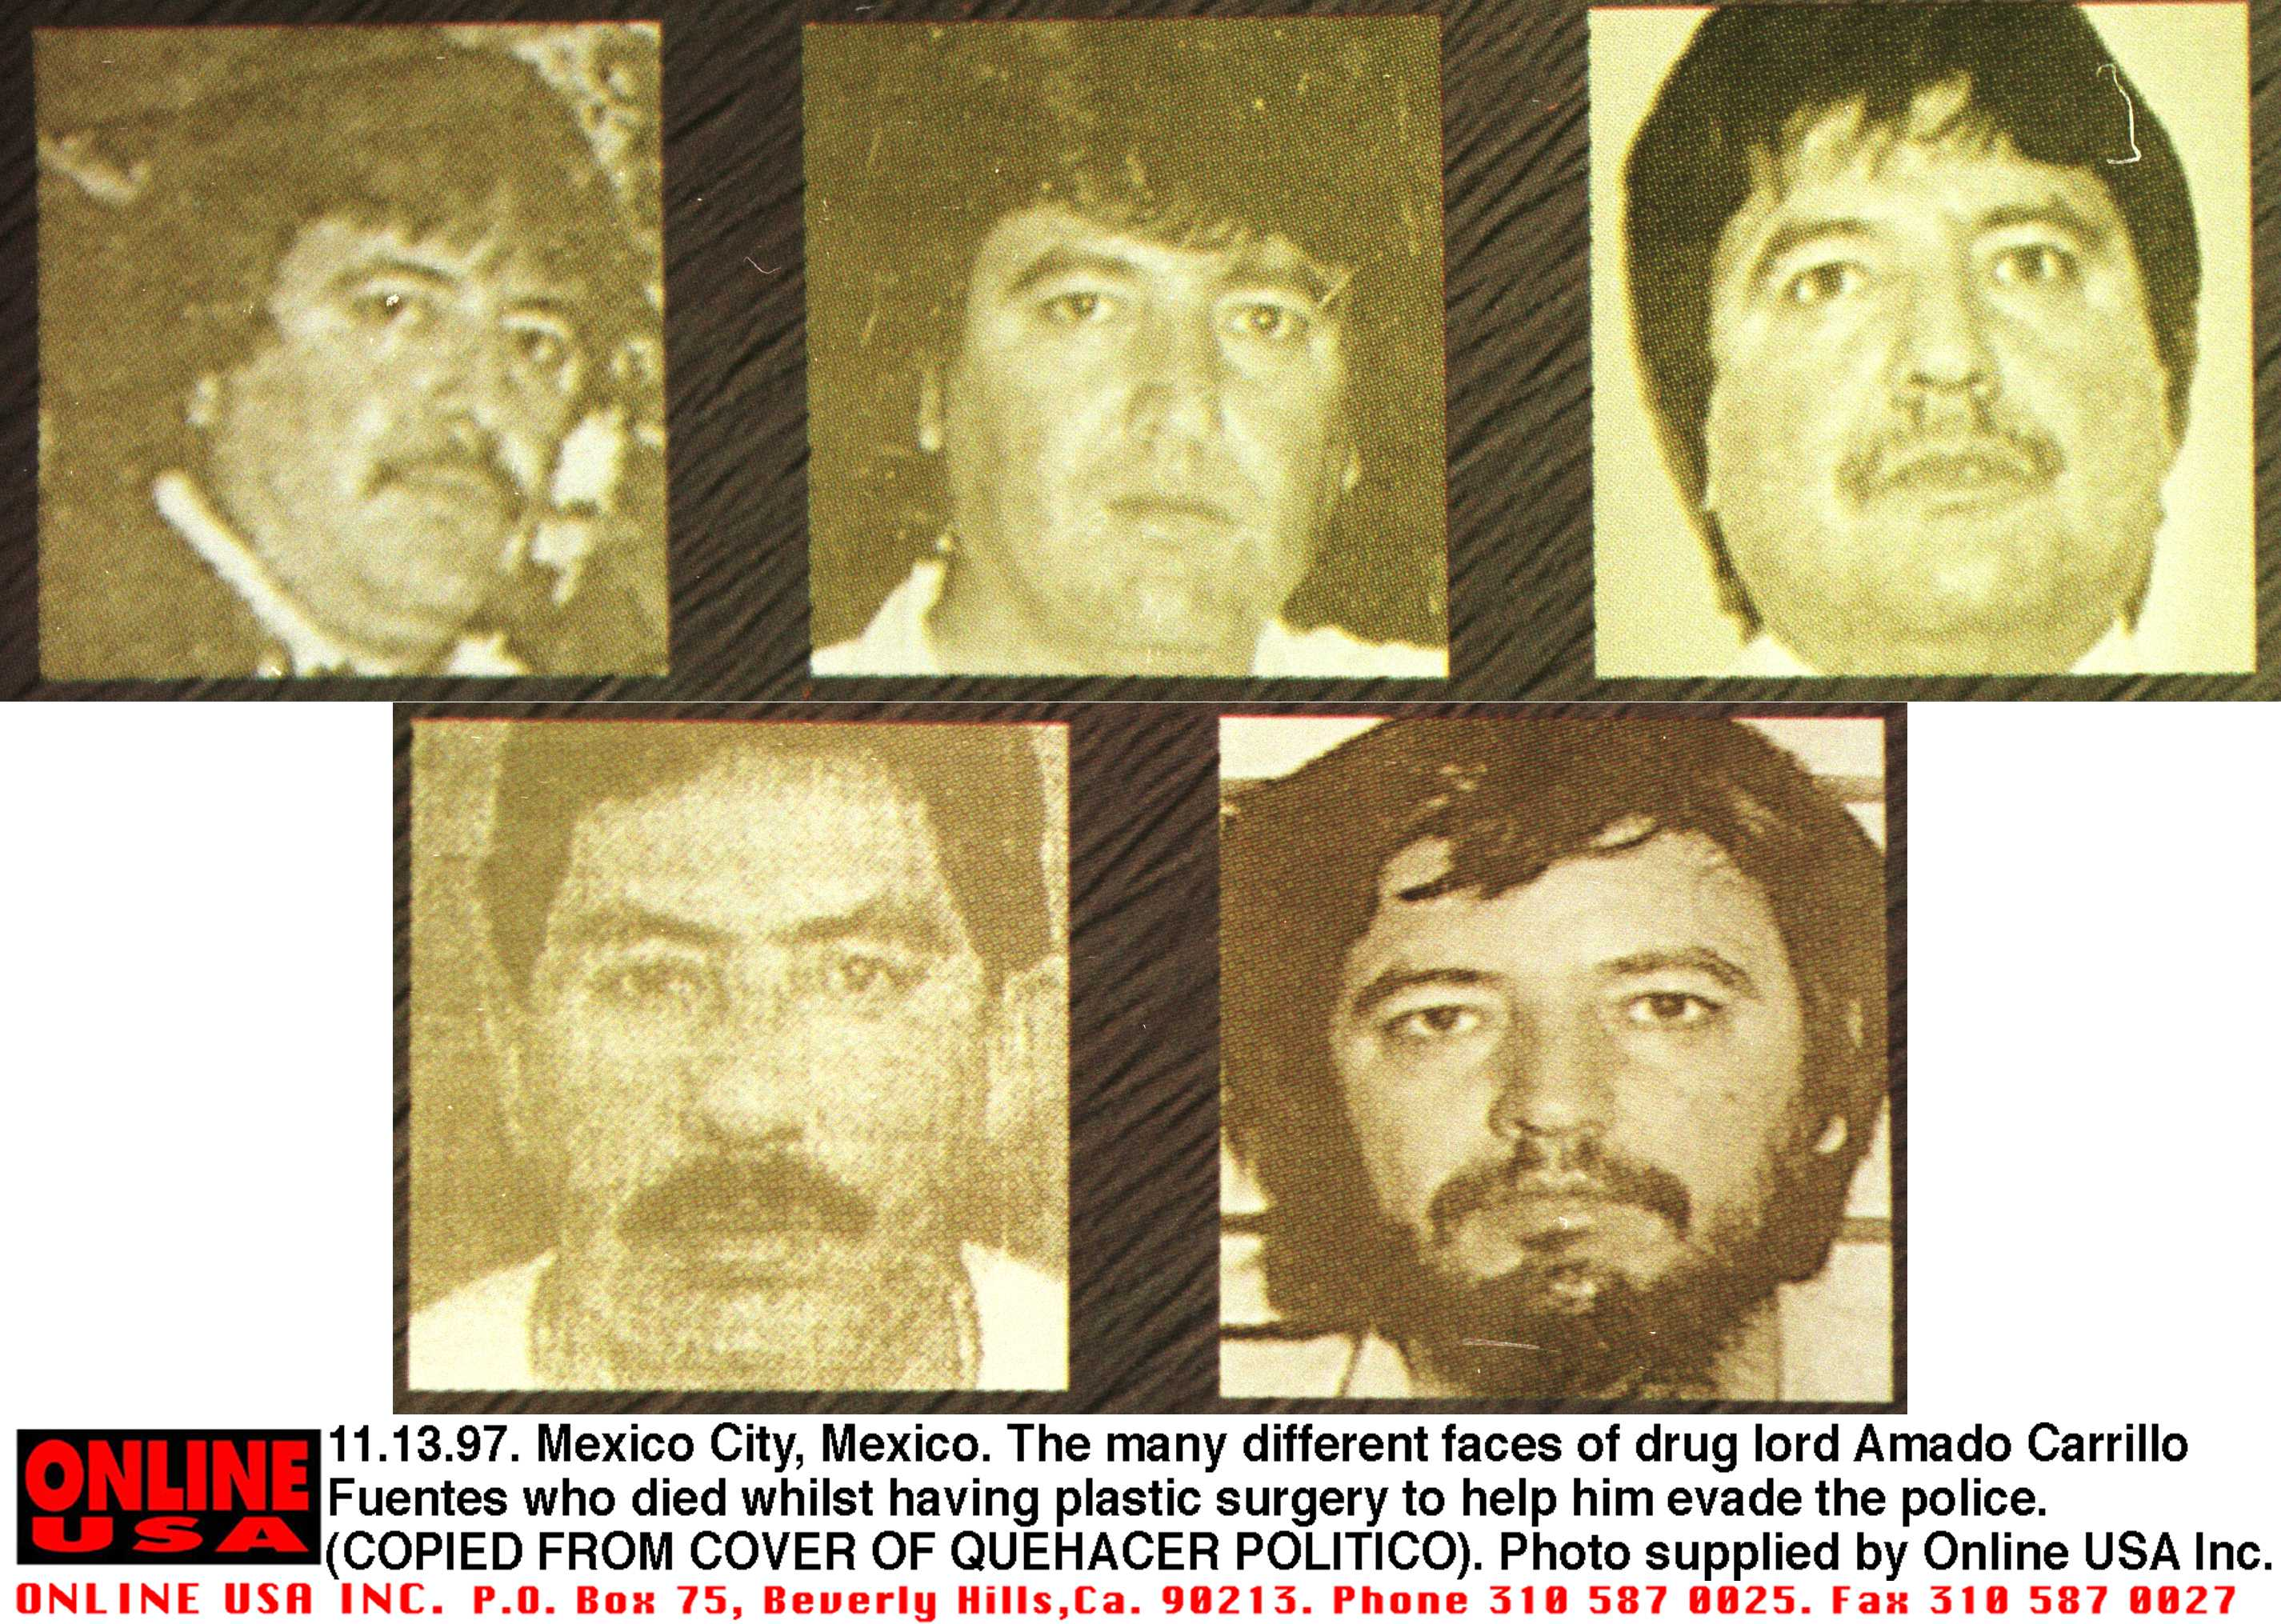 Wanted photos of Amado Carrillo Fuentes